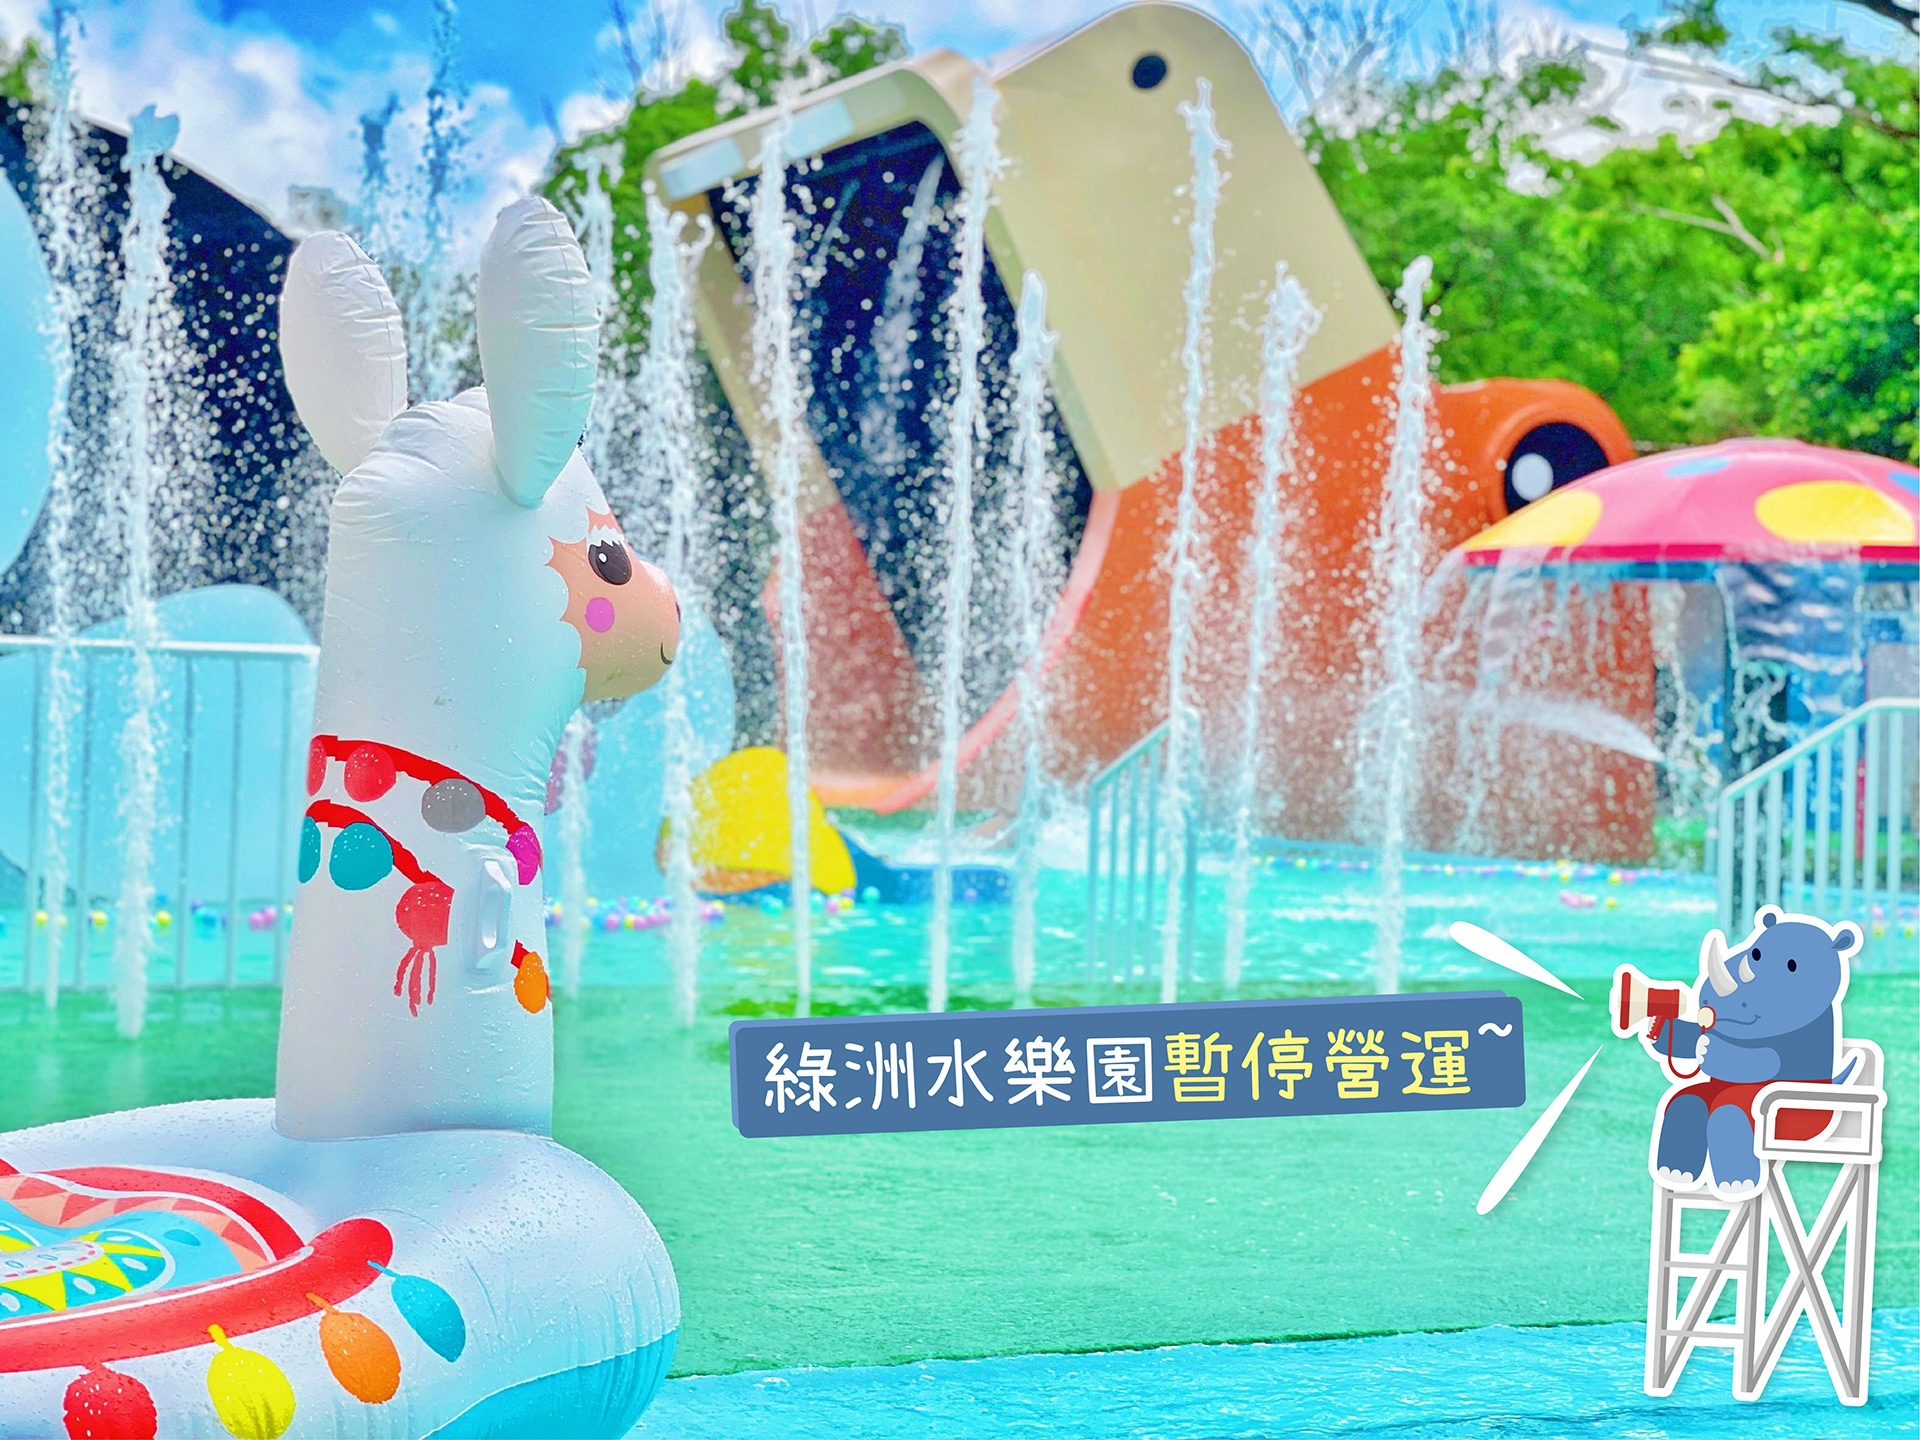 You are currently viewing 綠洲水樂園 營運狀況通知